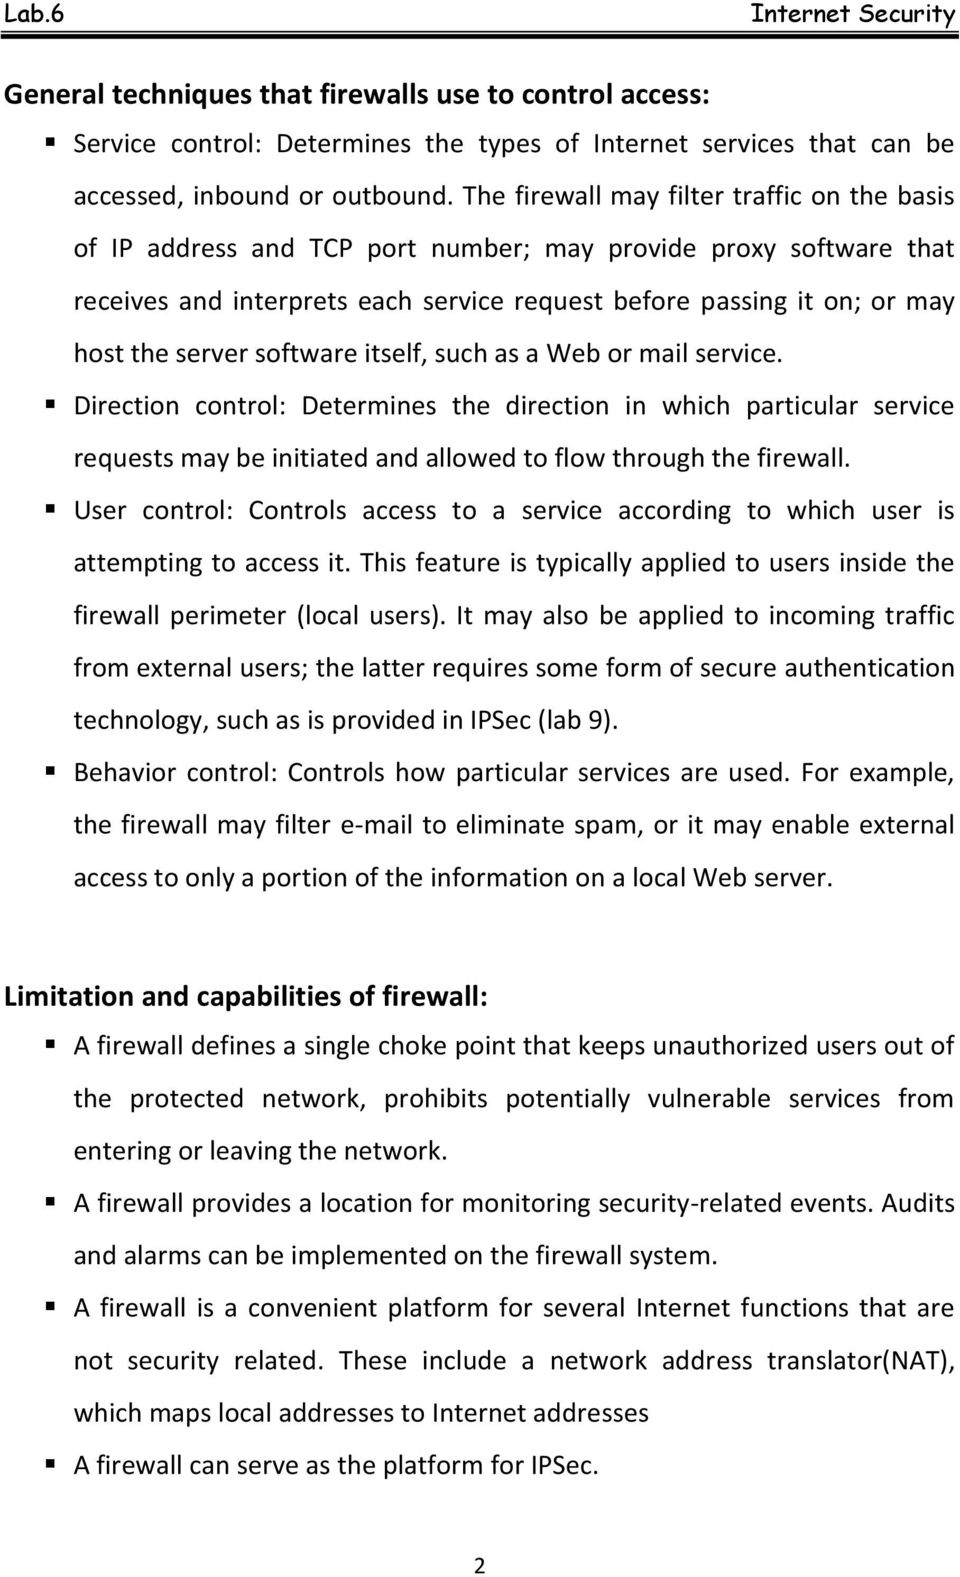 server software itself, such as a Web or mail service. Direction control: Determines the direction in which particular service requests may be initiated and allowed to flow through the firewall.